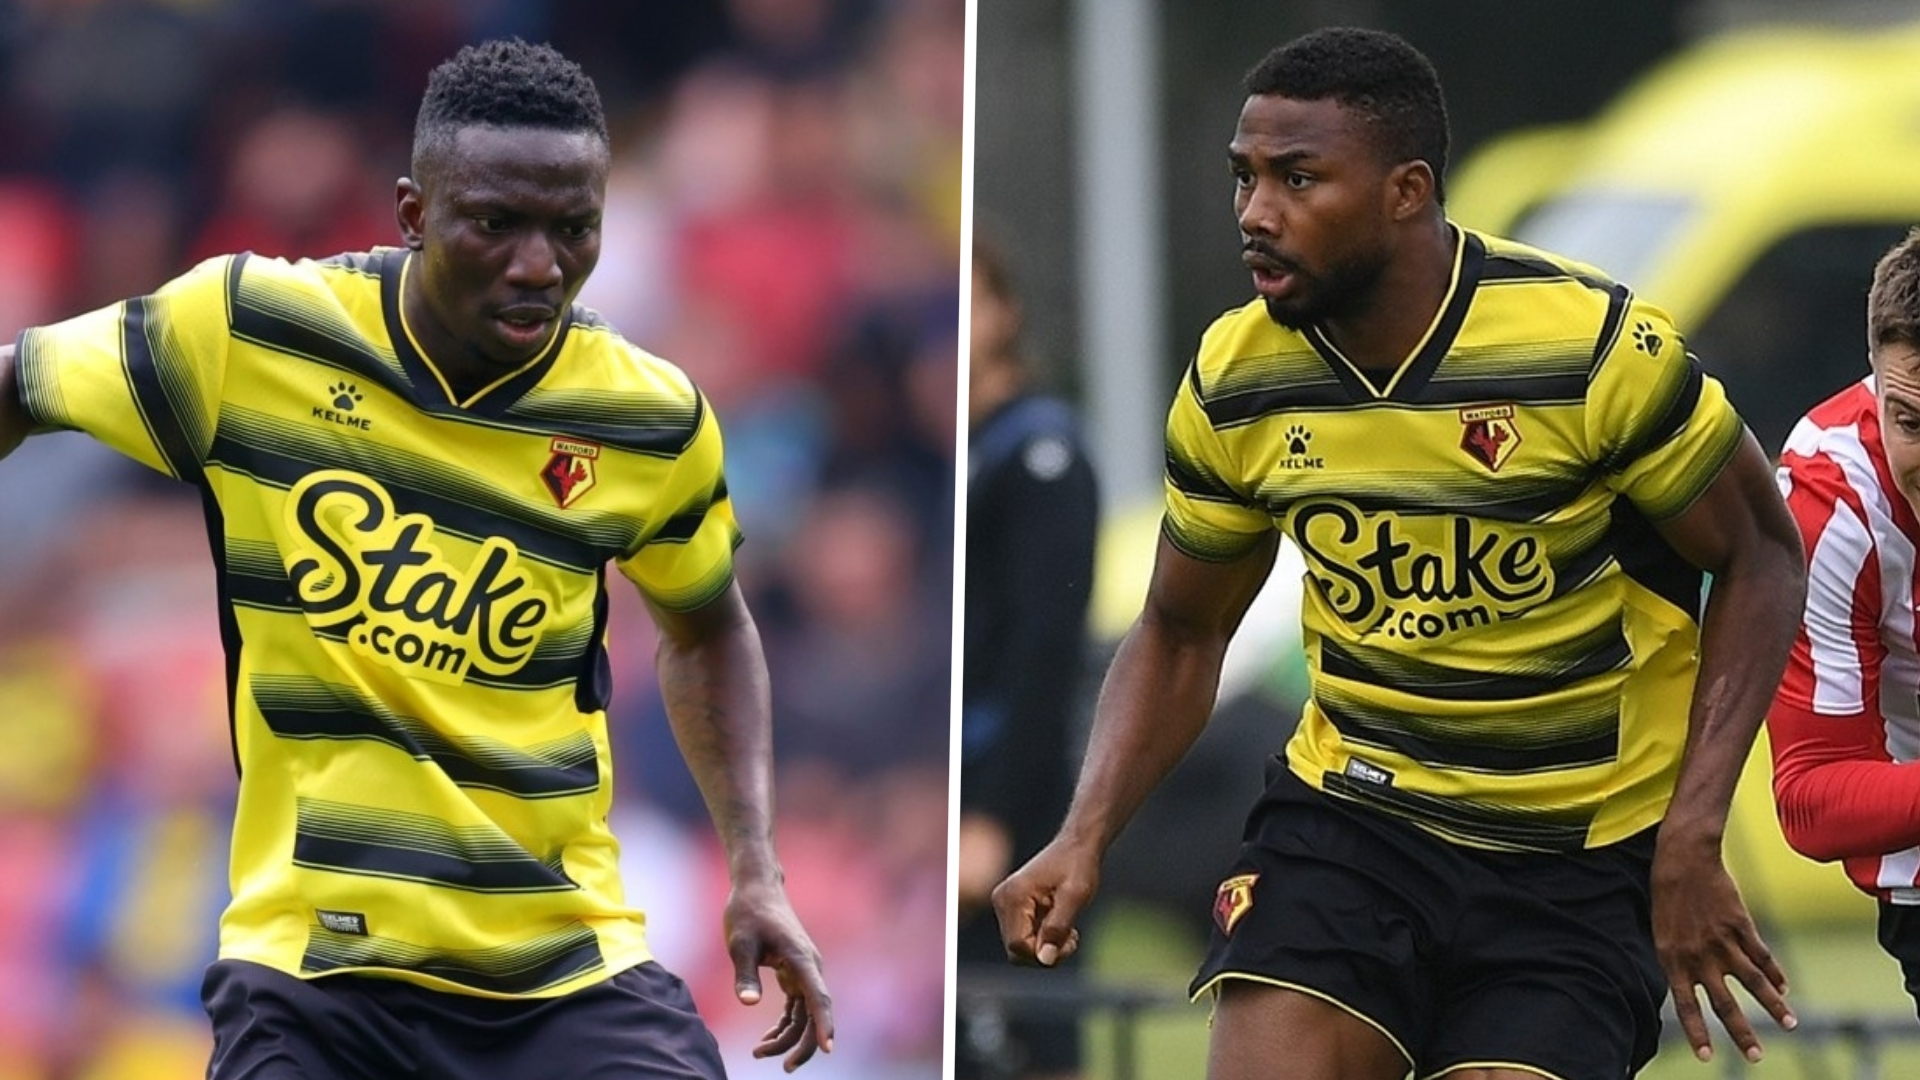 Watford reveal Dennis and Etebo's jersey numbers